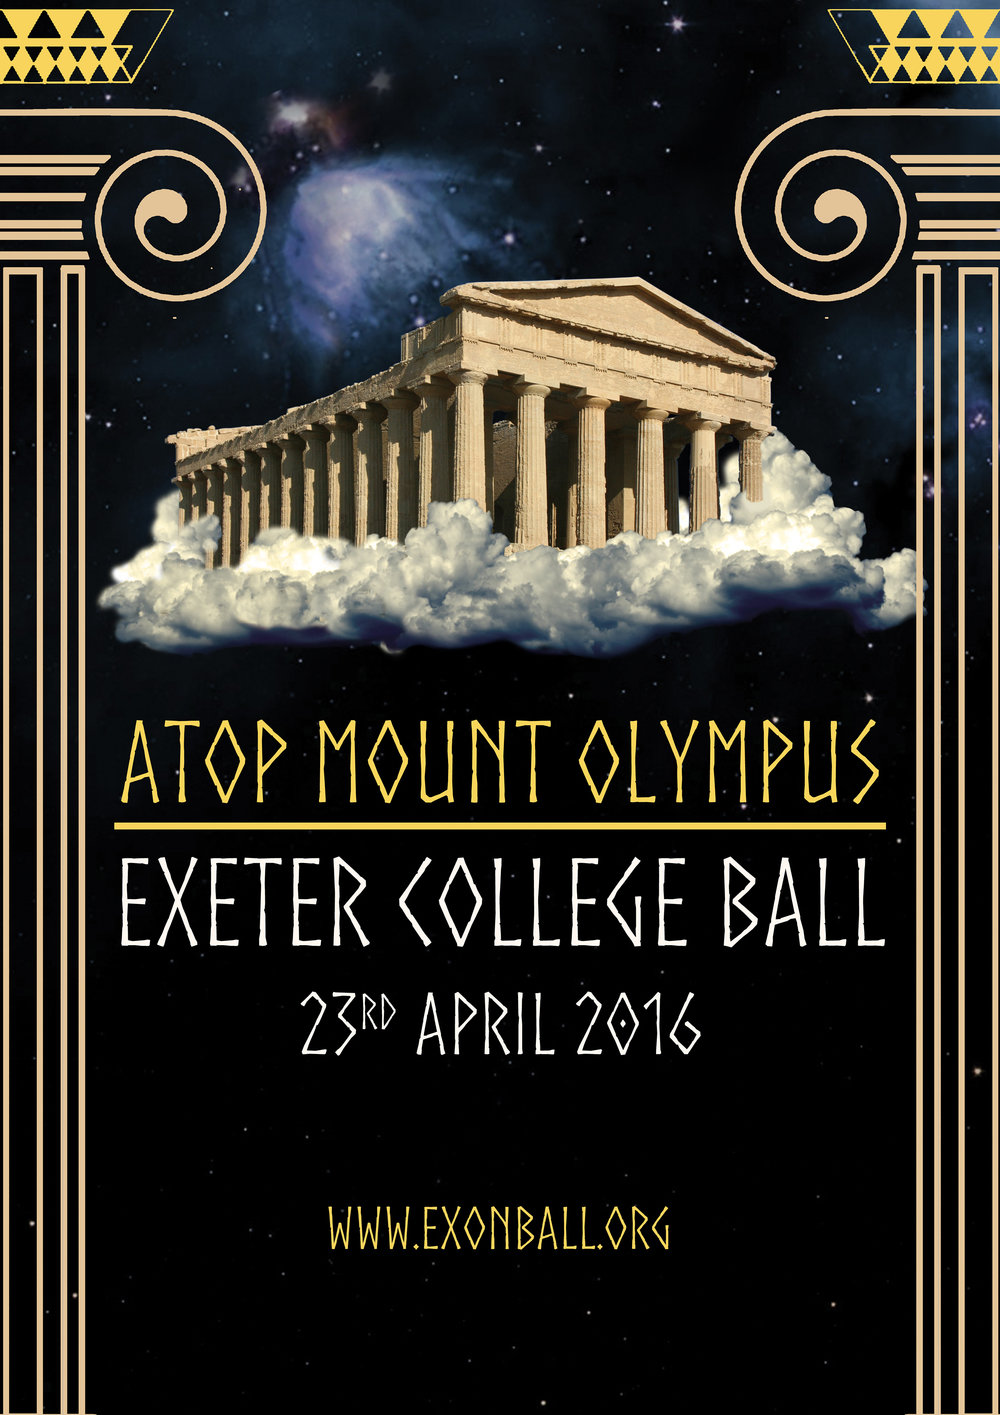 EXETER COLLEGE BALL 2016 sm.jpg